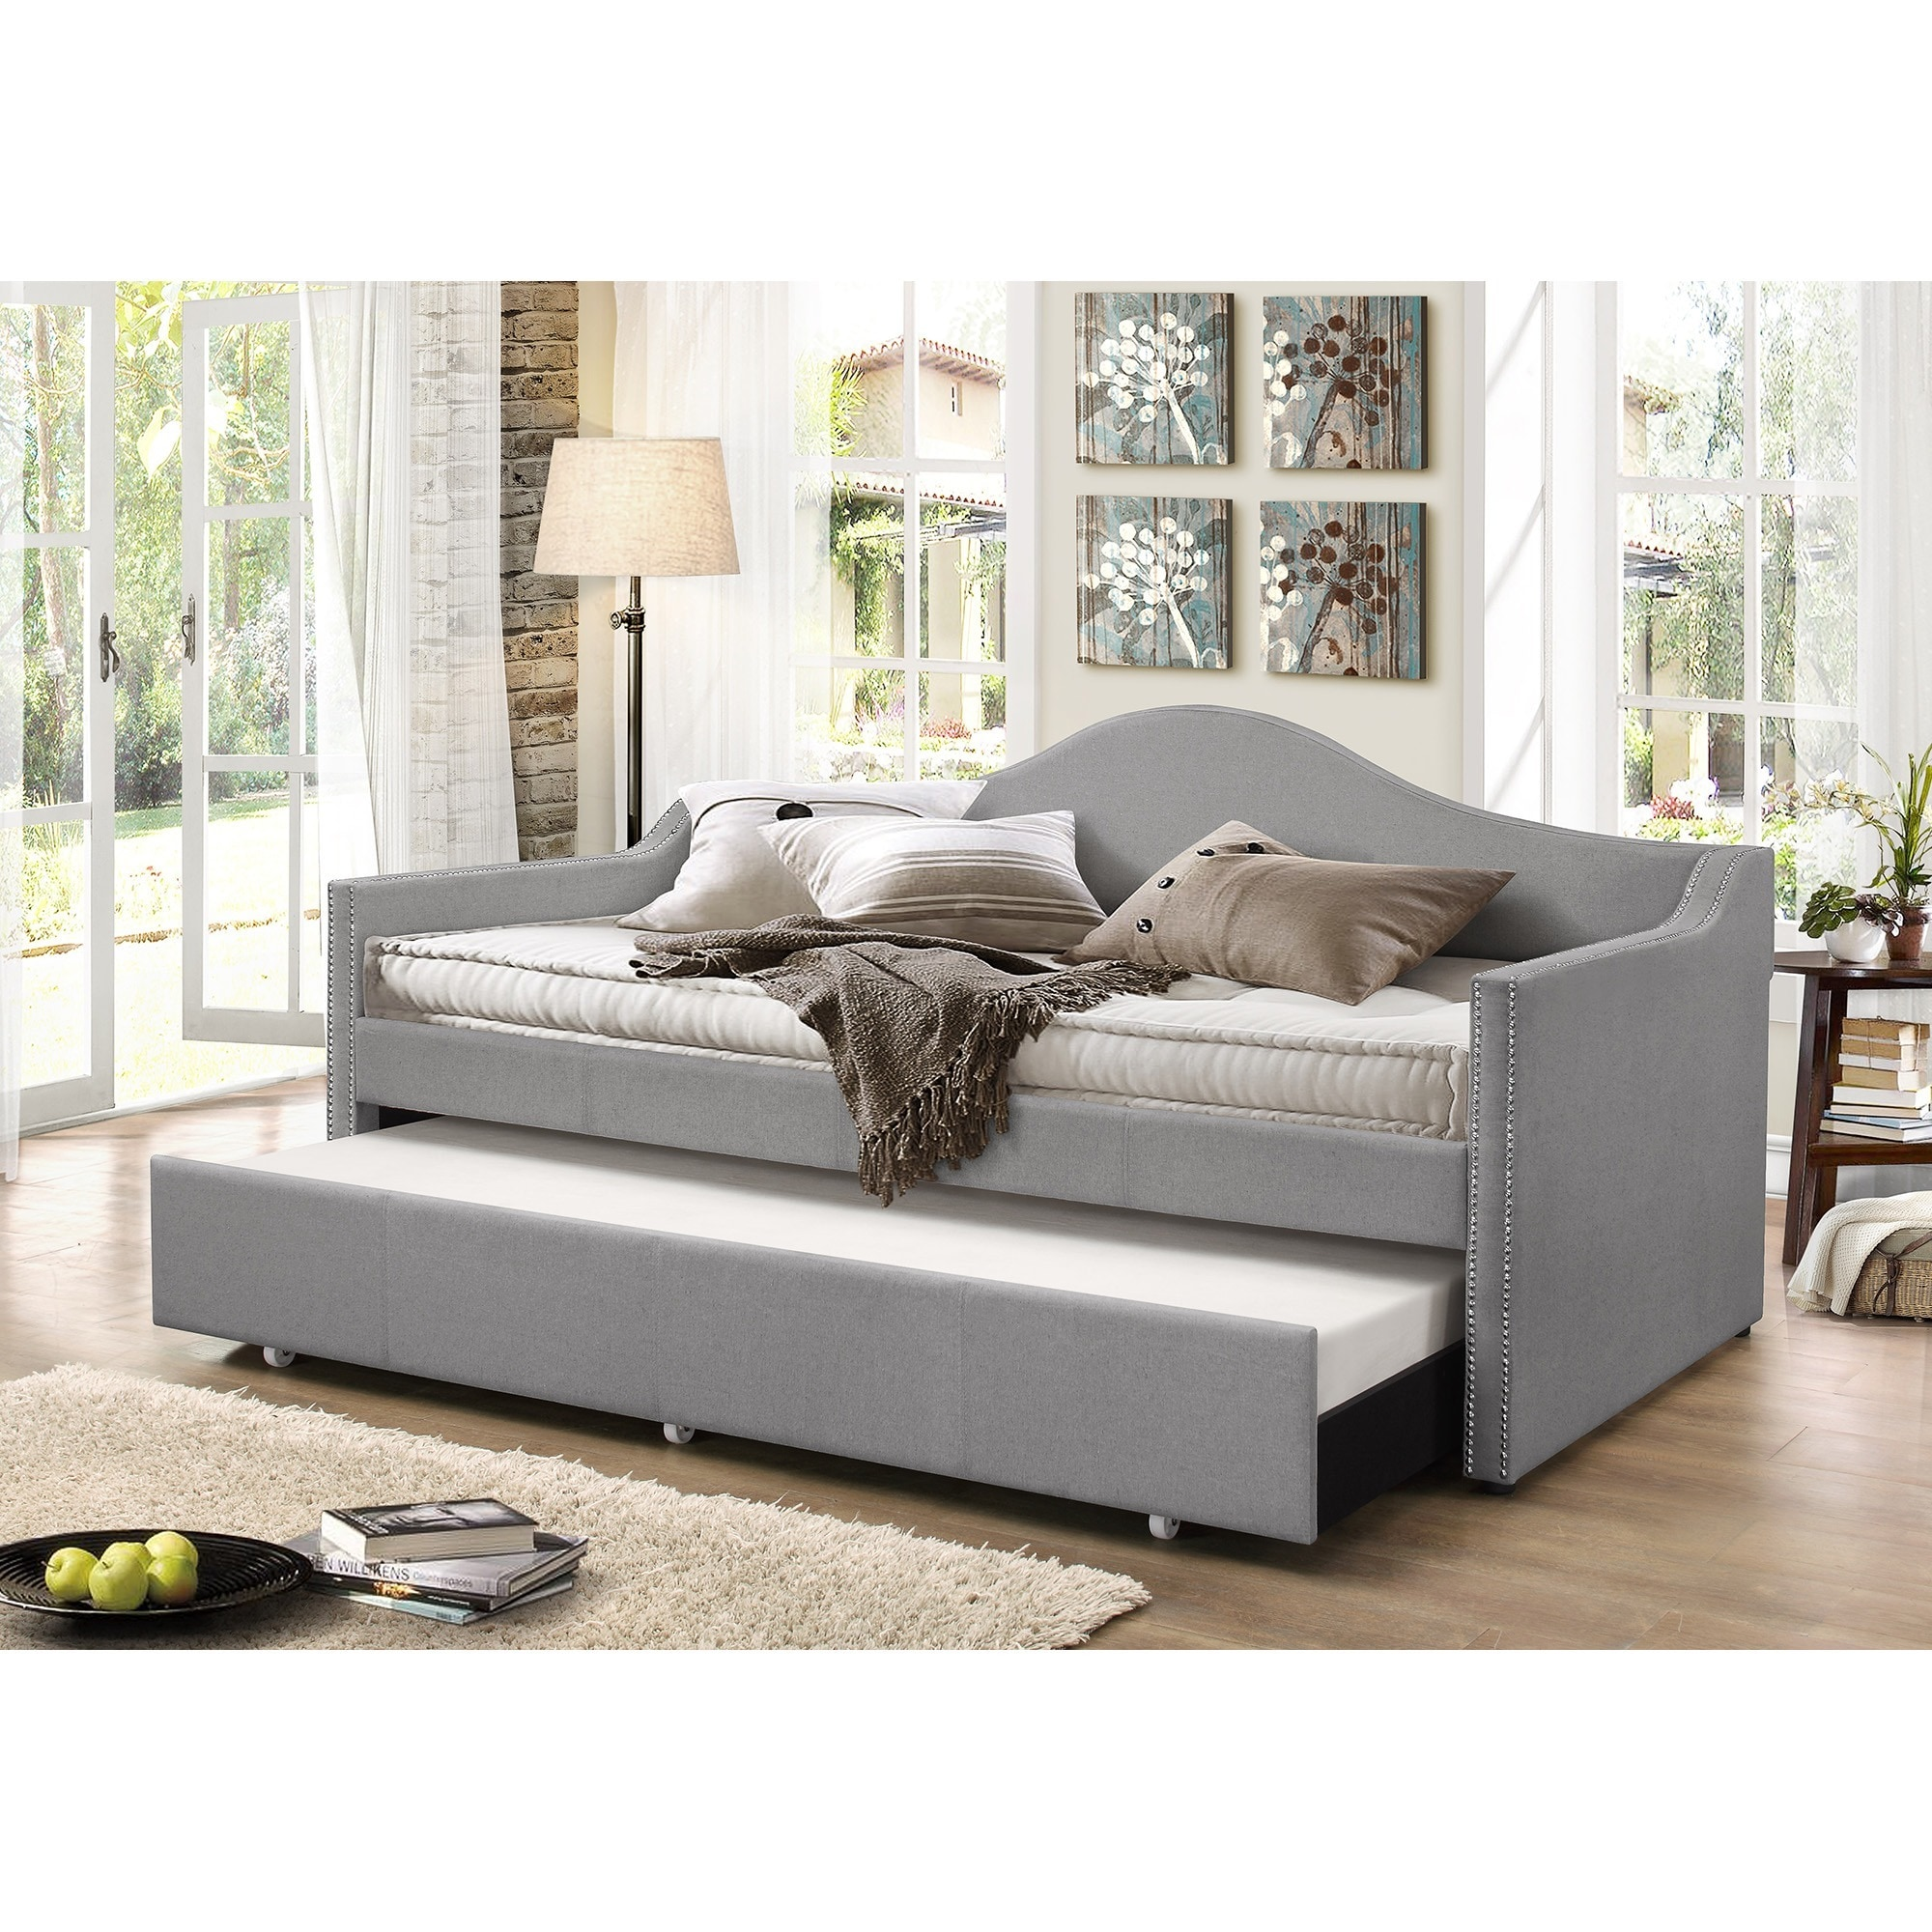 Baxton Studio Psykhe Modern Contemporary Beige Or Grey Fabric Upholstered Arch Back Sofa Daybed With Roll Out Trundle Guest Bed Free Shipping Today